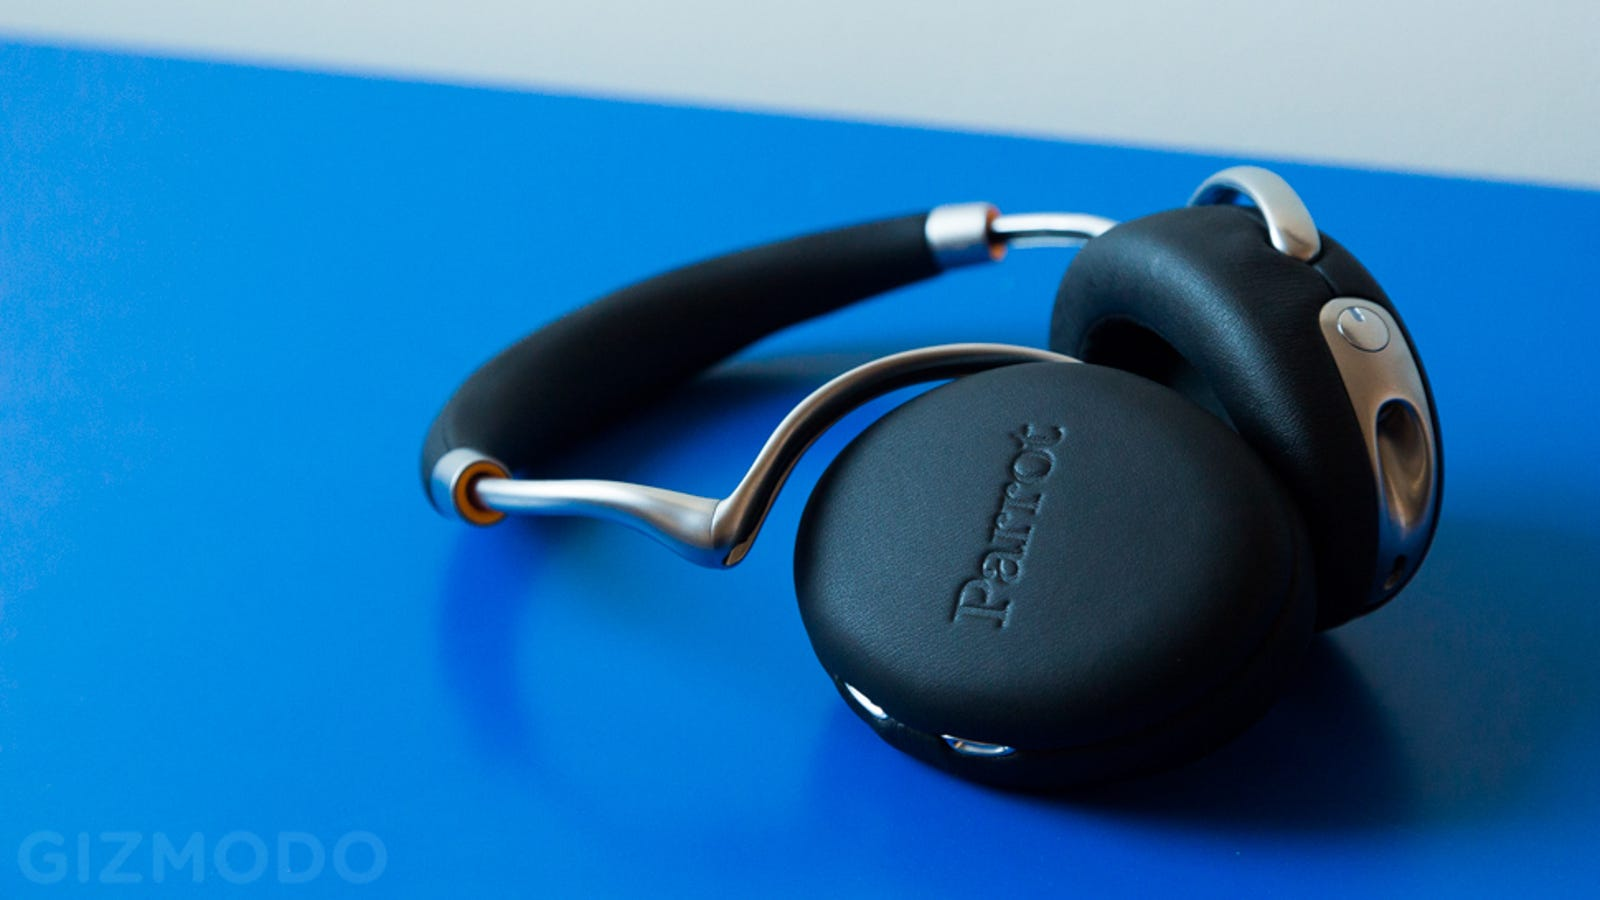 earbuds lg k20 - Parrot Zik 2.0 Hands-On: The World's Most Advanced Headphones? Maybe.